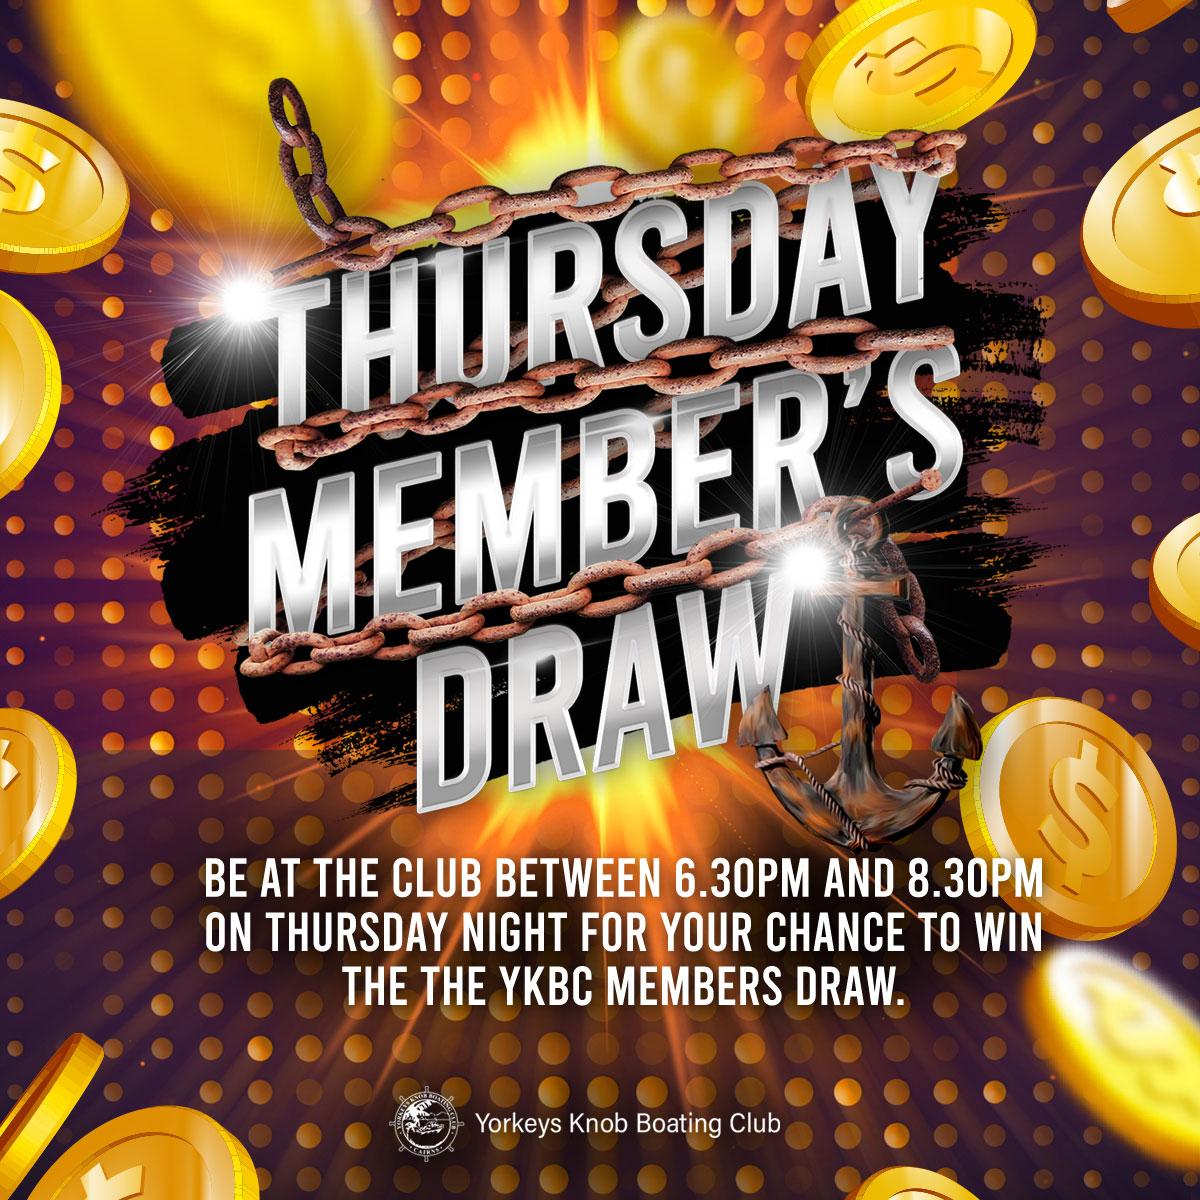 Thu_Member's-draw_FB_FEED_